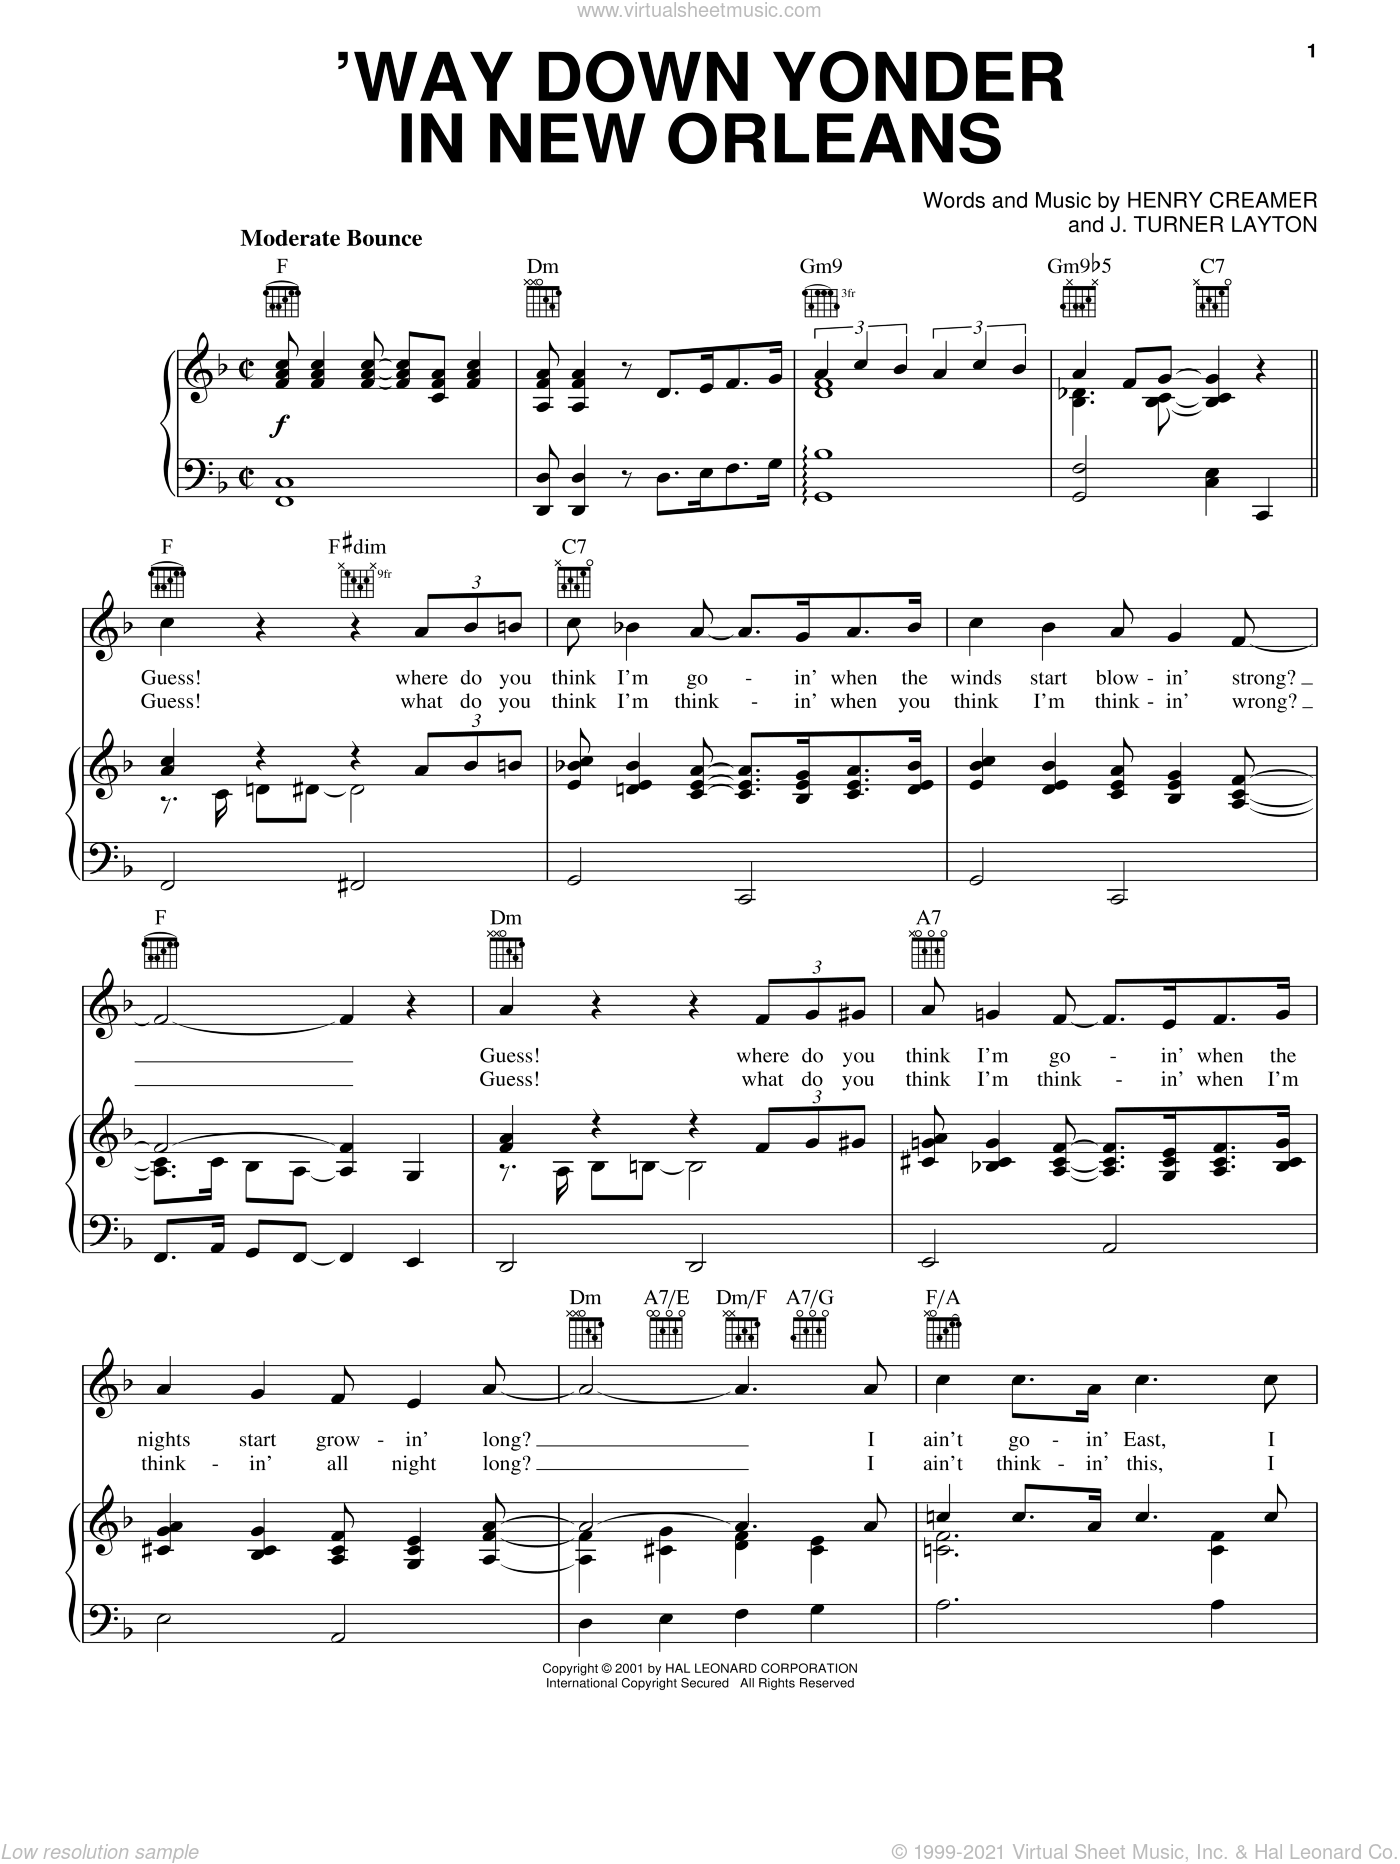 'Way Down Yonder In New Orleans sheet music for voice, piano or guitar by Blossom Seely, Freddy Cannon, Henry Creamer and Turner Layton, intermediate skill level